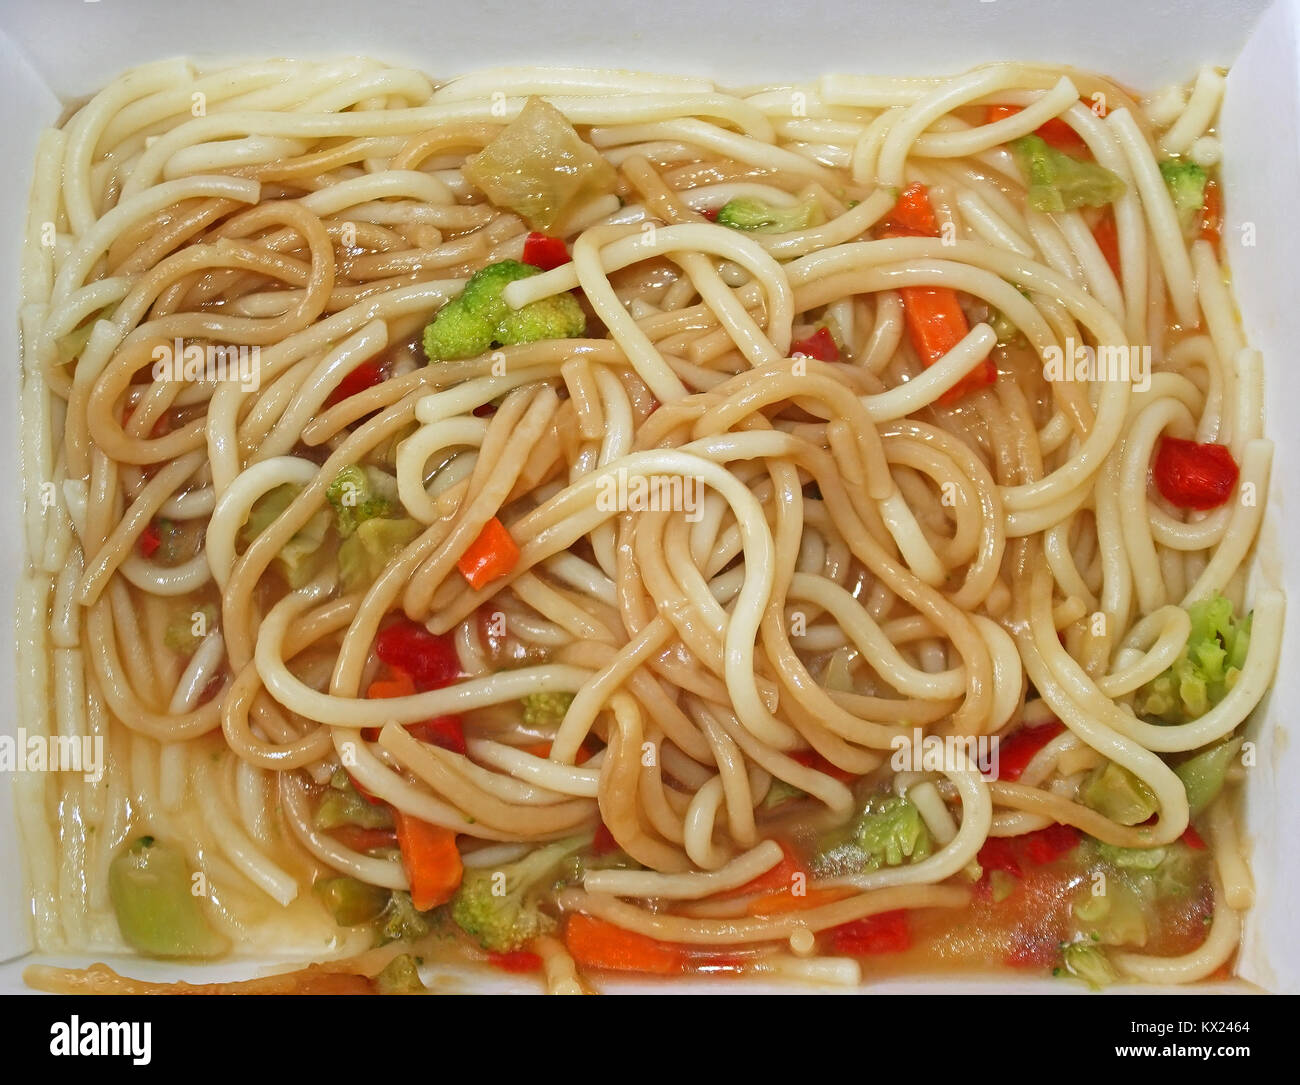 Cardboard container of noodles and vegetables that has been microwaved - Stock Image